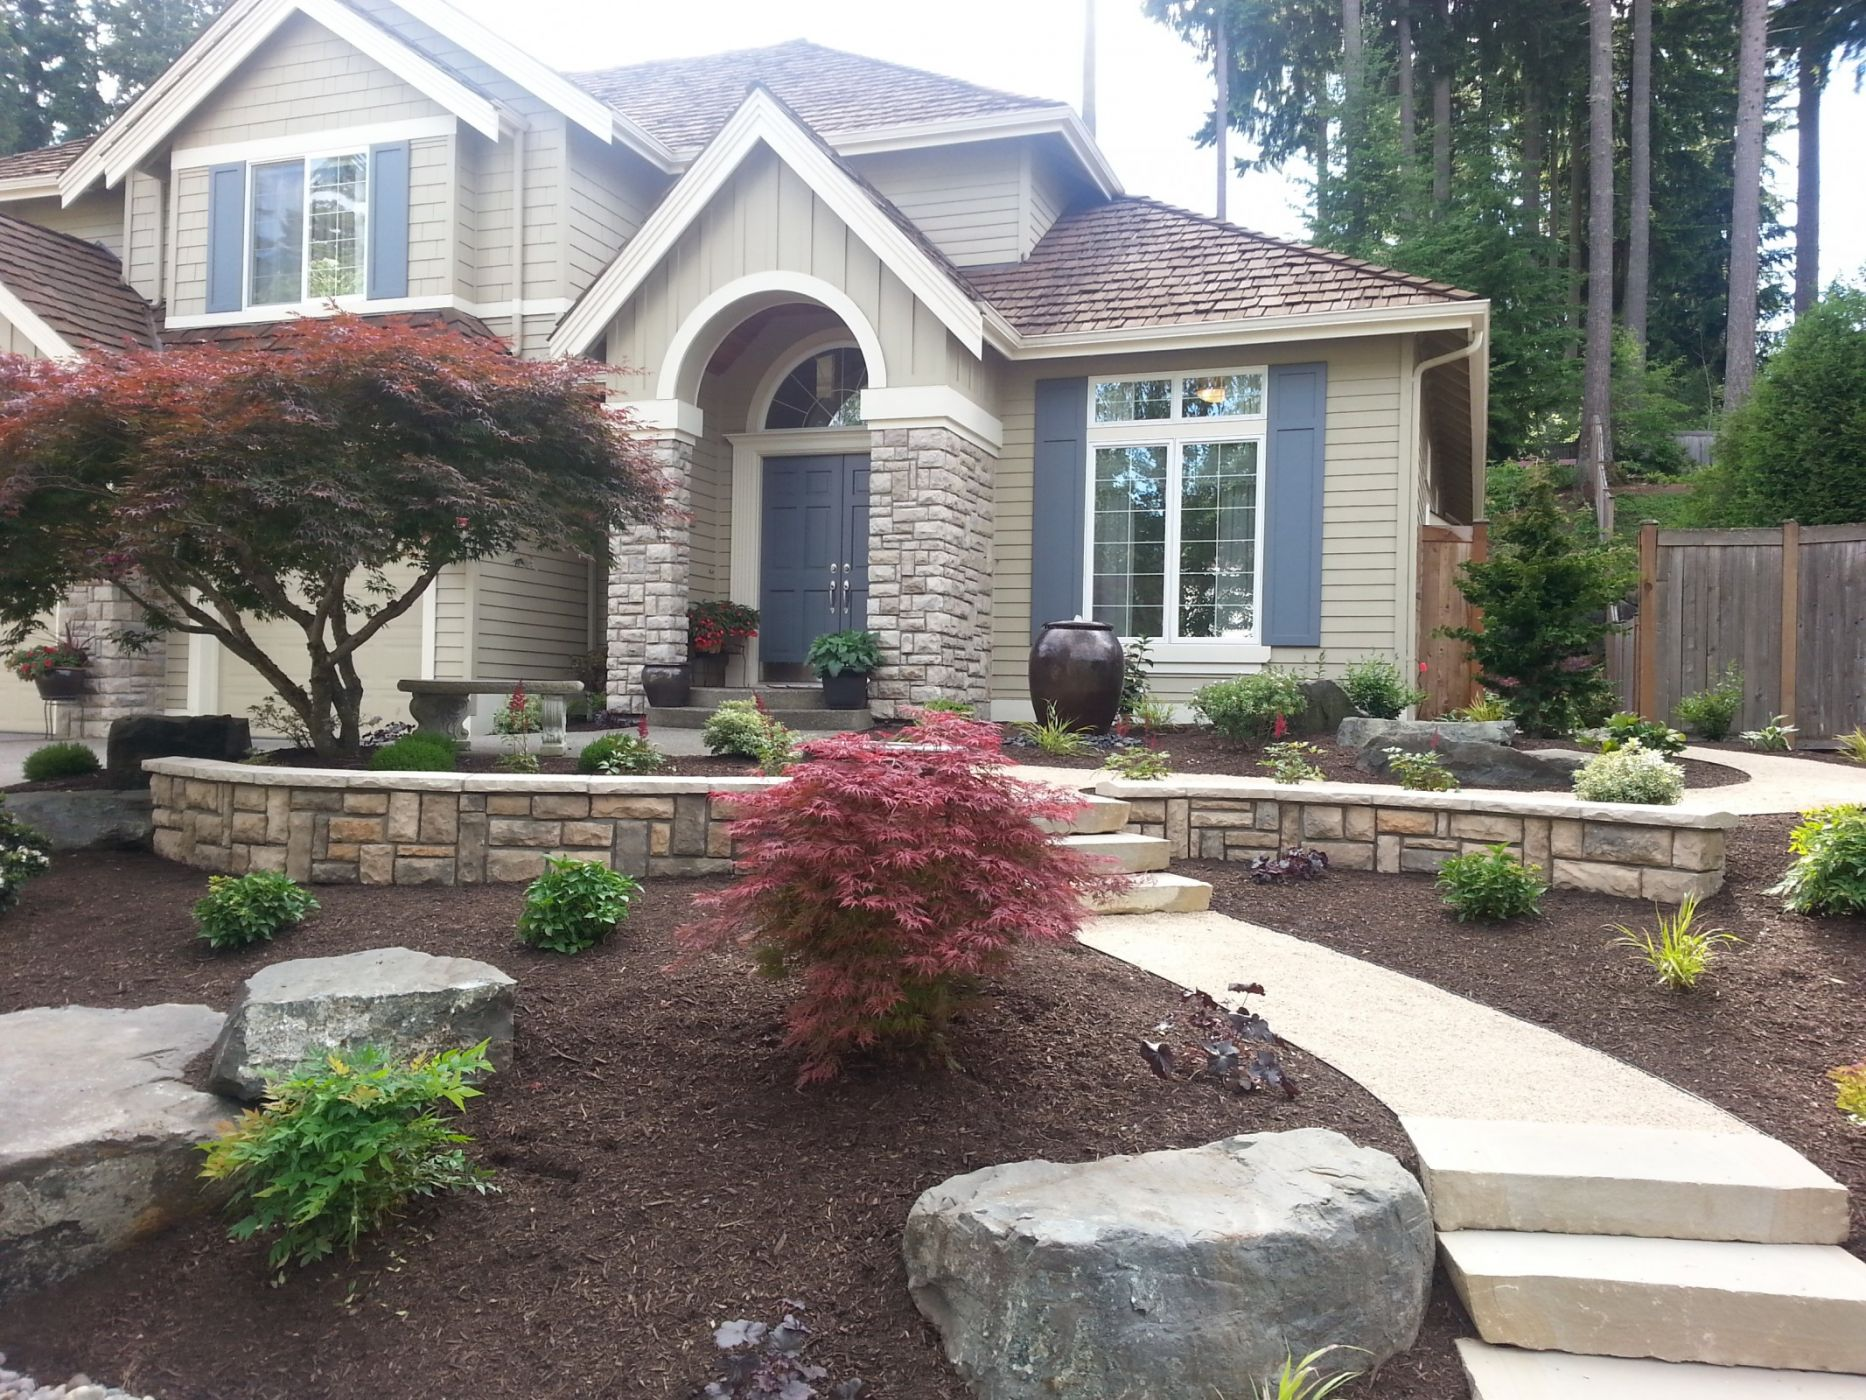 Janika landscaping ideas front yard illinois here for Front yard landscape design photos